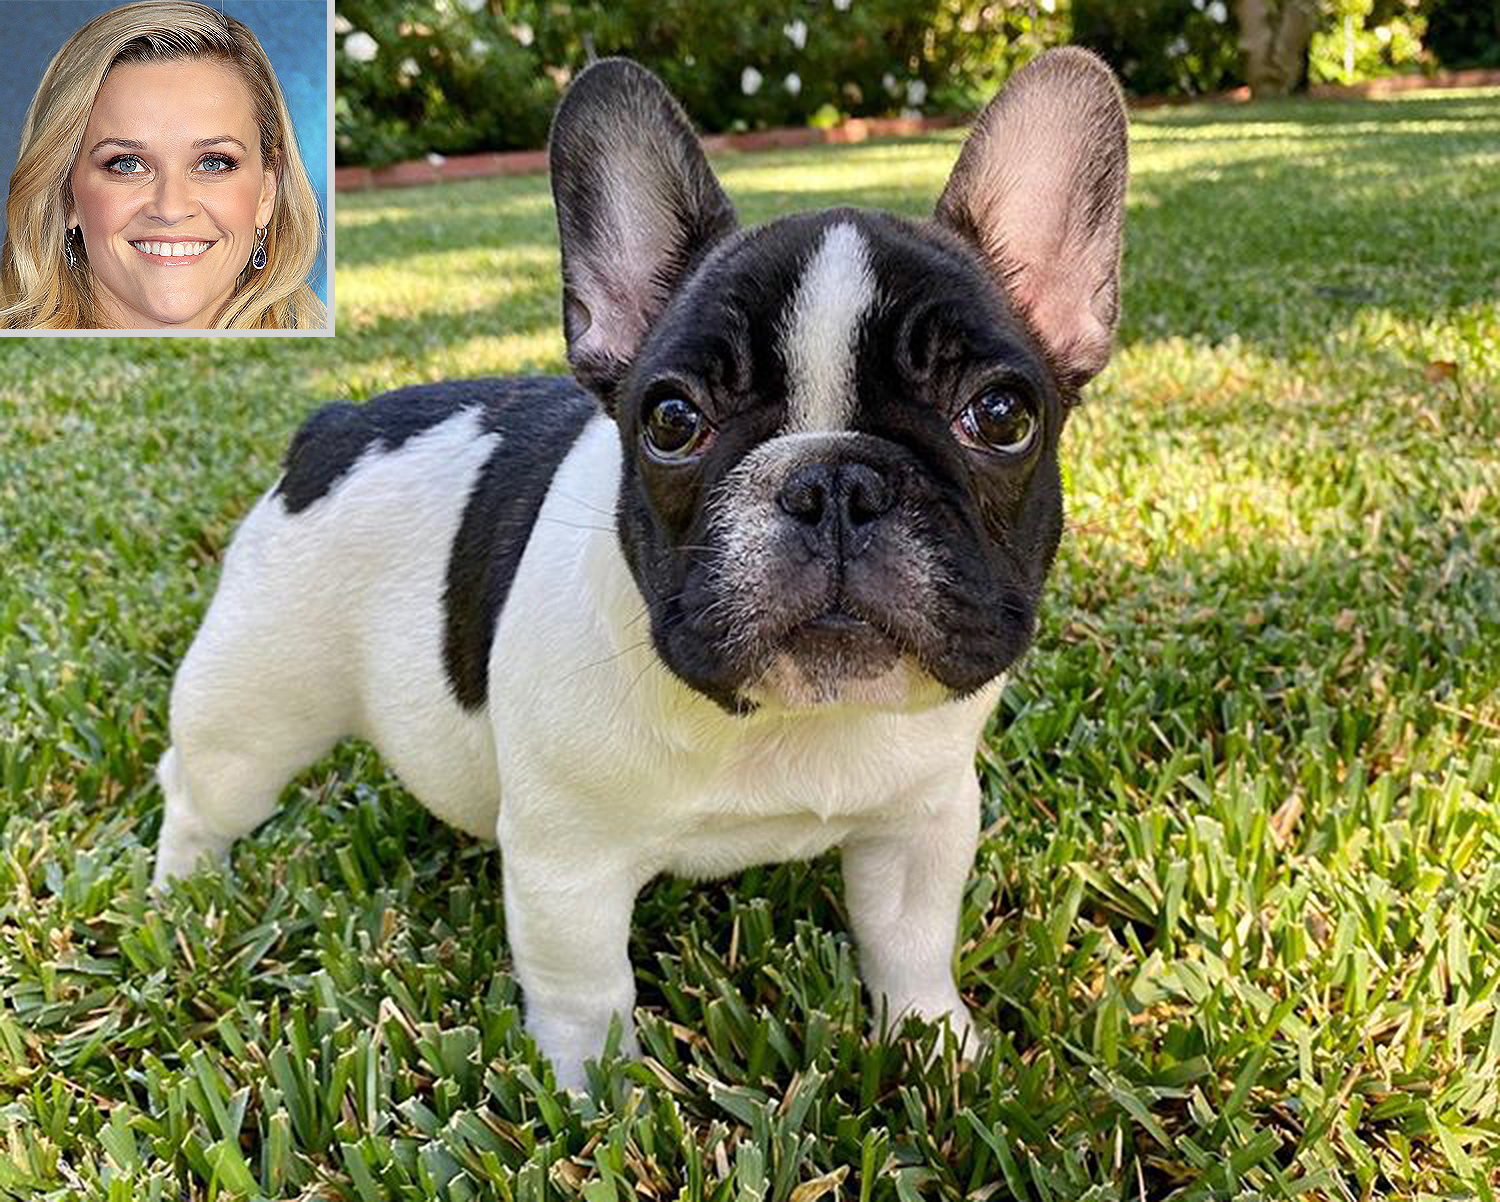 Reese Witherspoon puppy